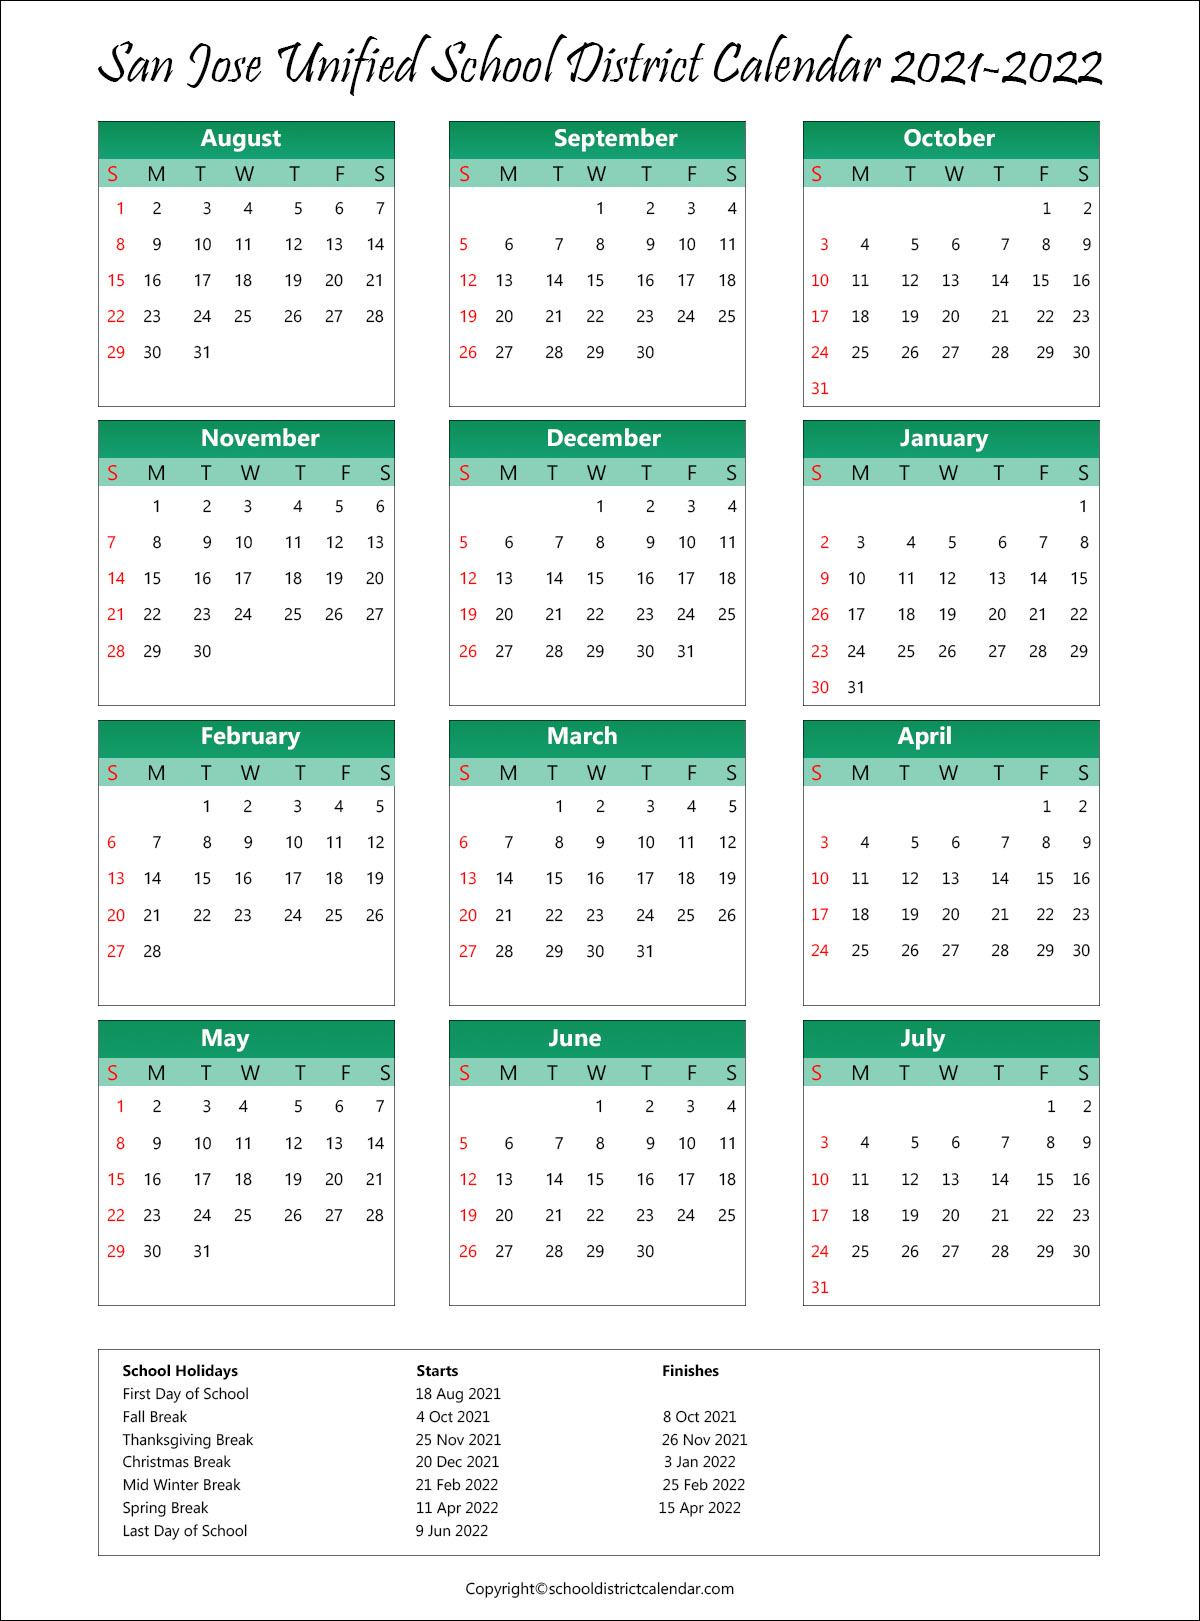 San Jose Unified School District, California Calendar Holidays 2021